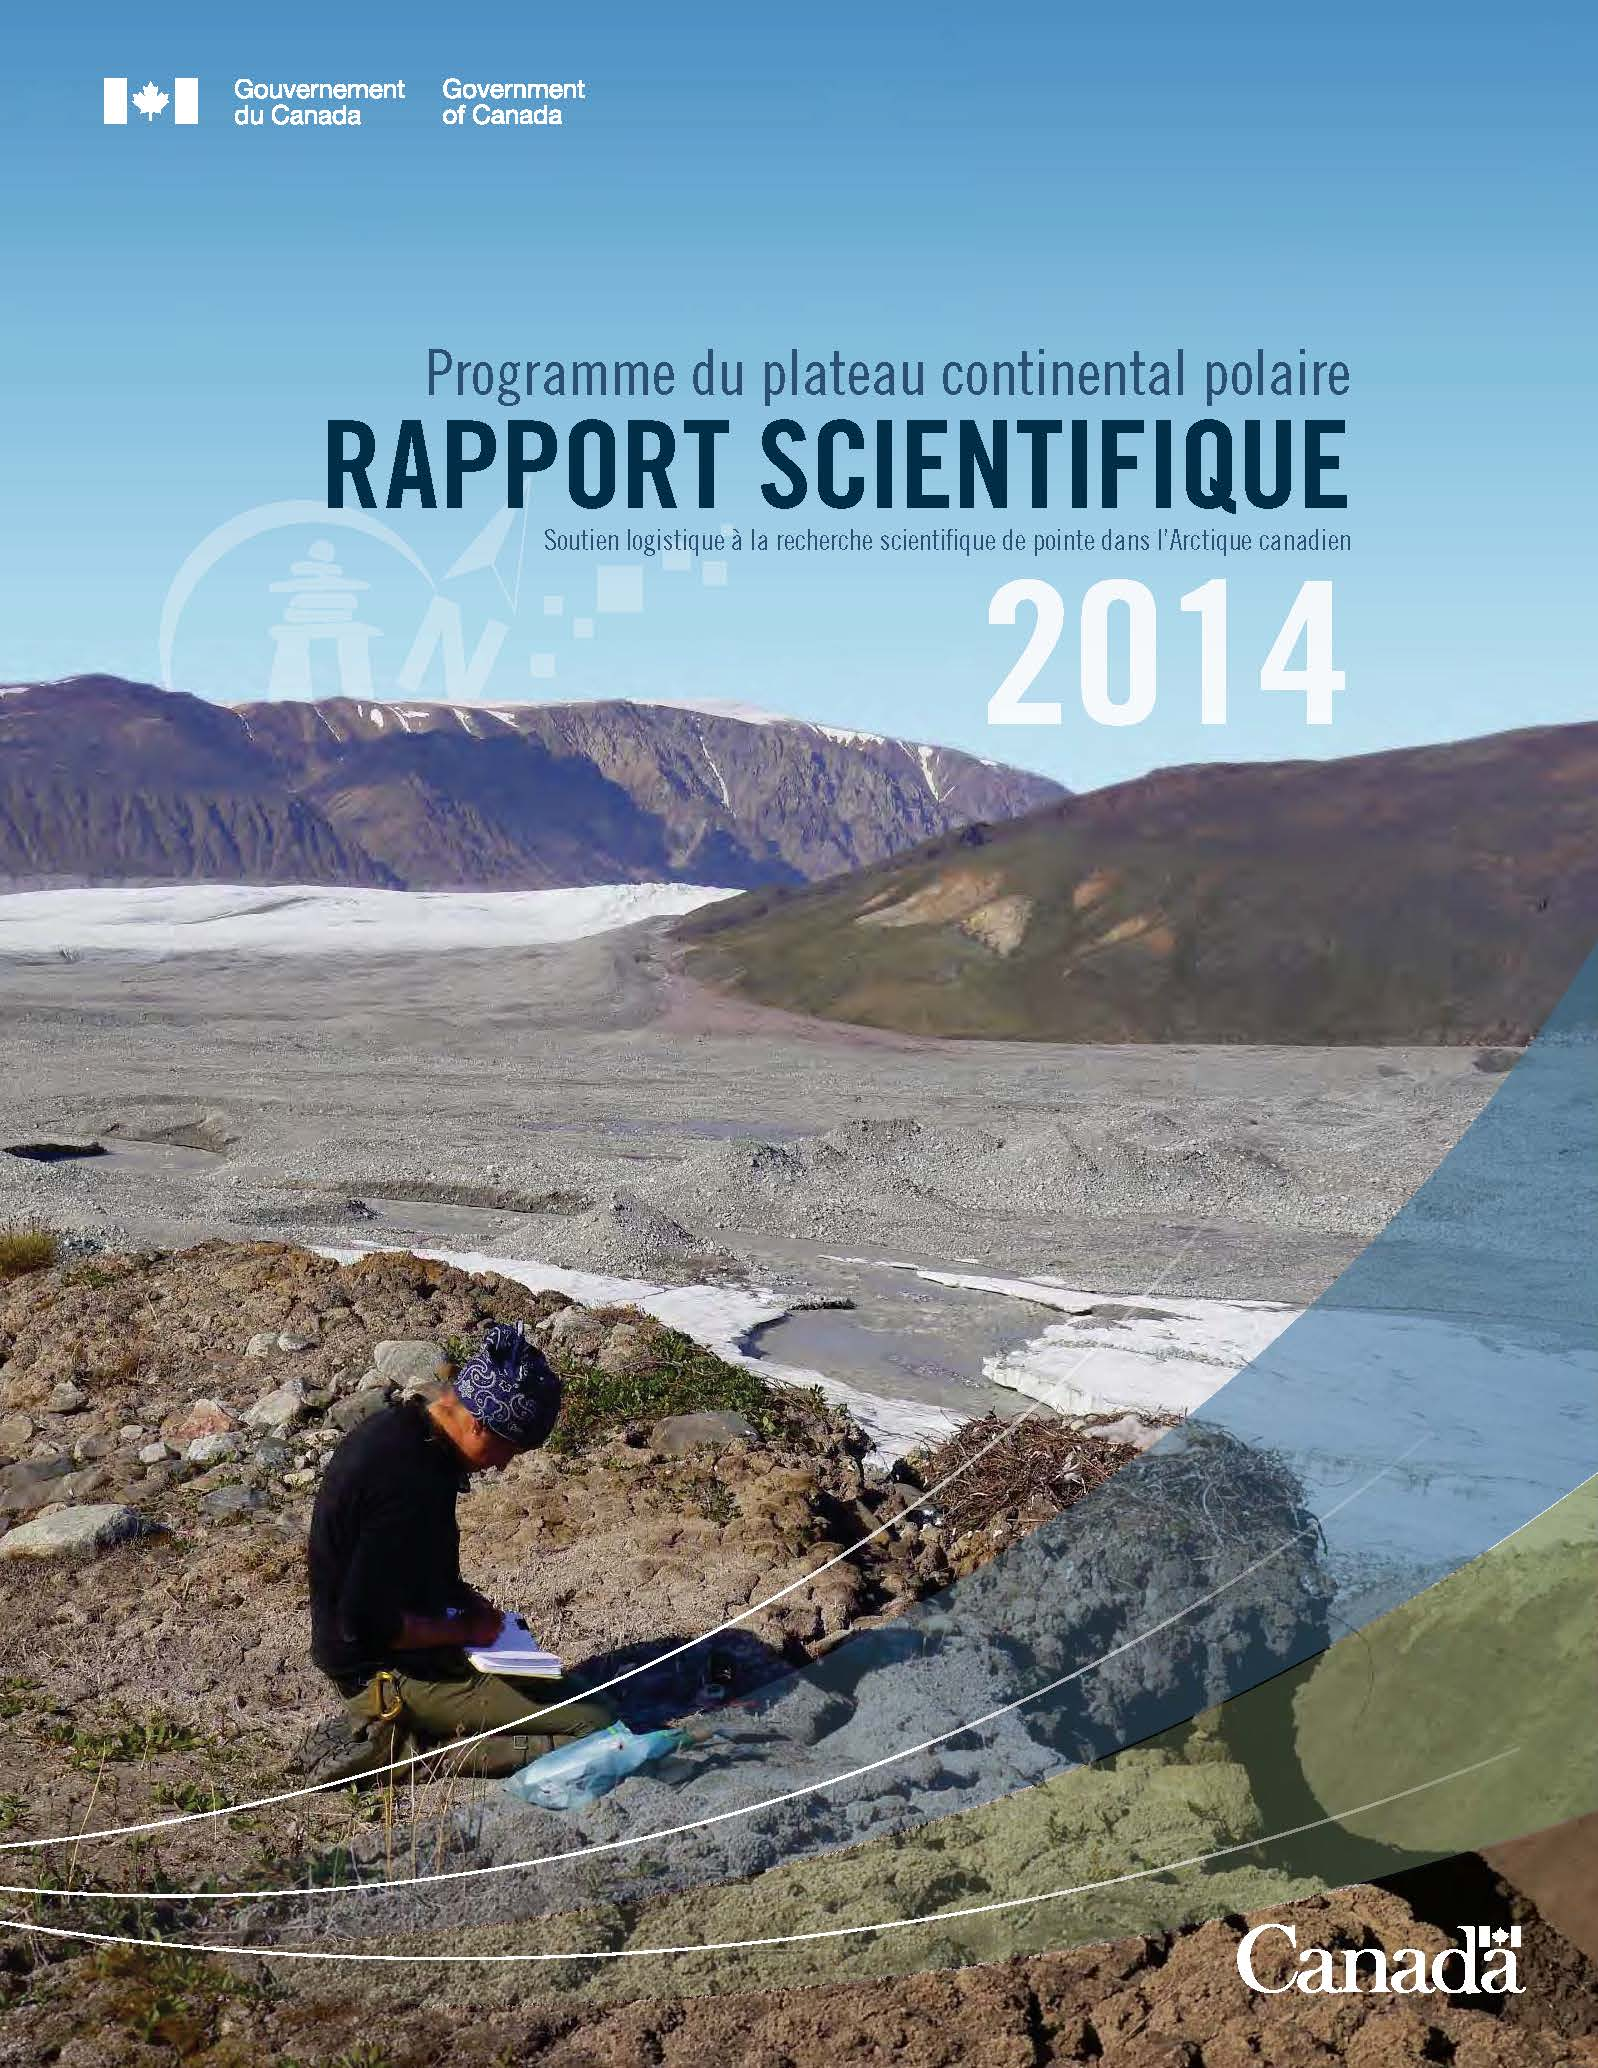 Couverture du rapport scientifique du PPCP 2014